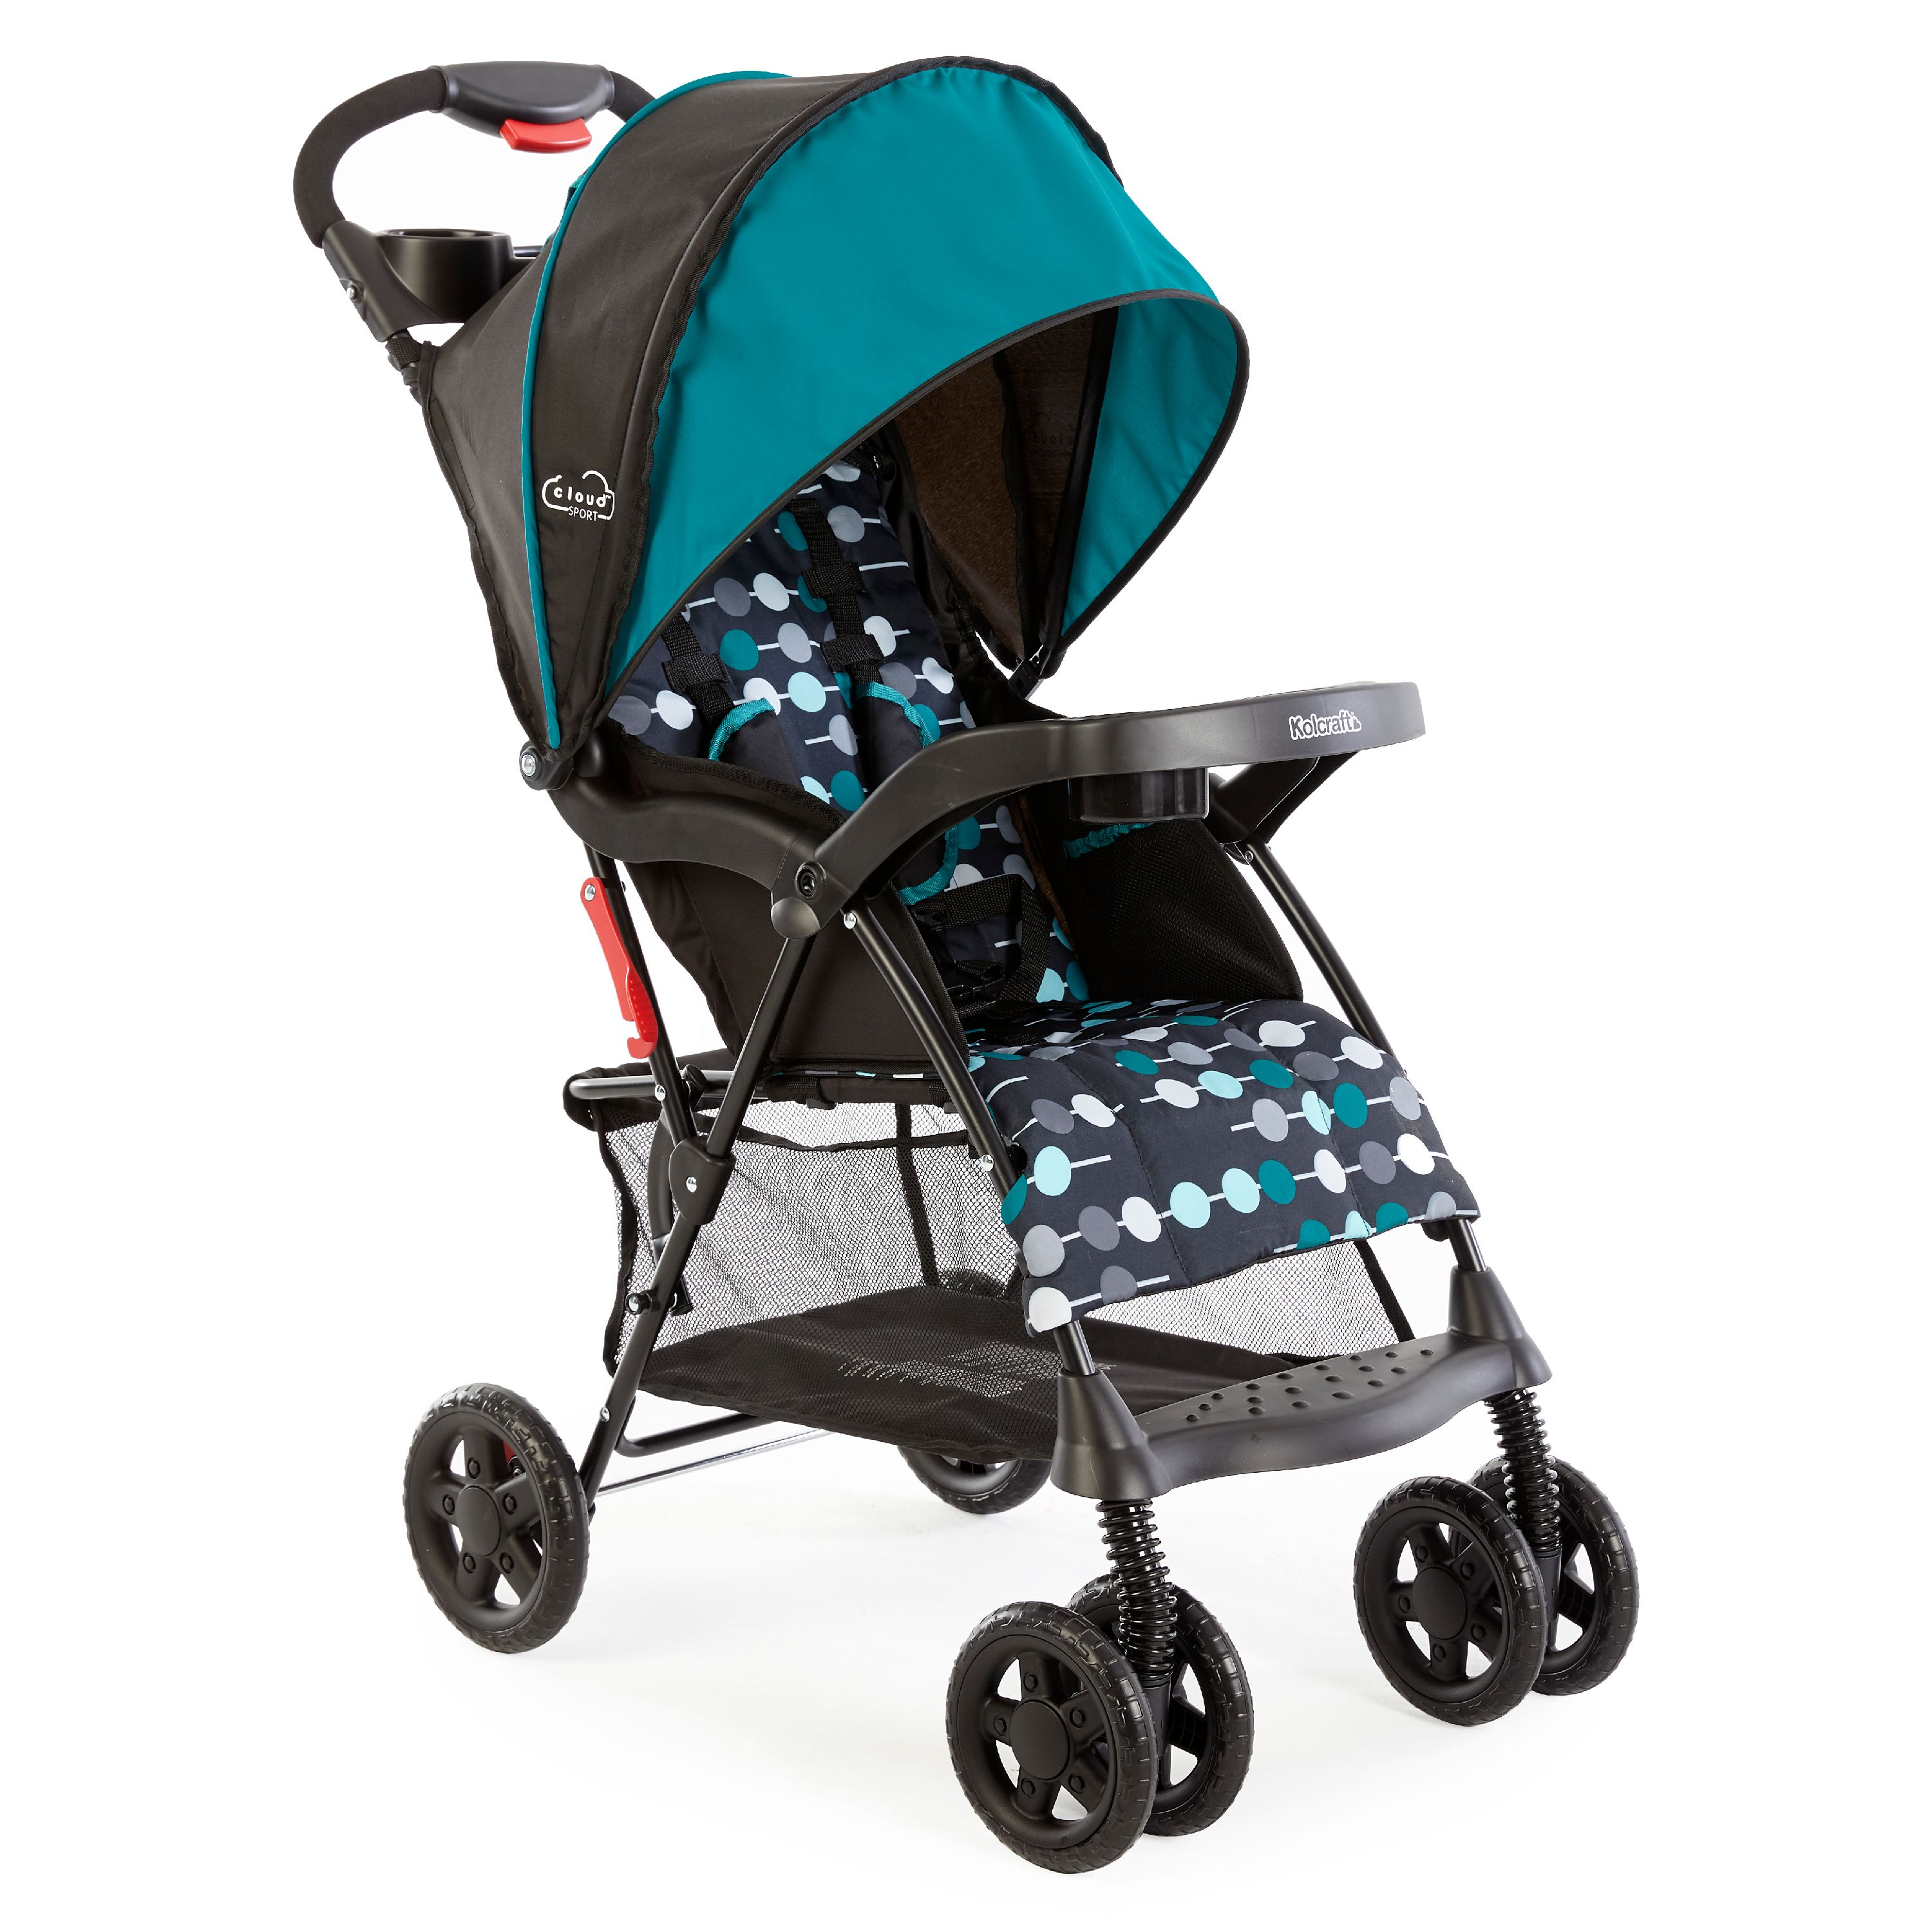 Kolcraft Cloud Sport Lightweight Stroller, Teal by Kolcraft